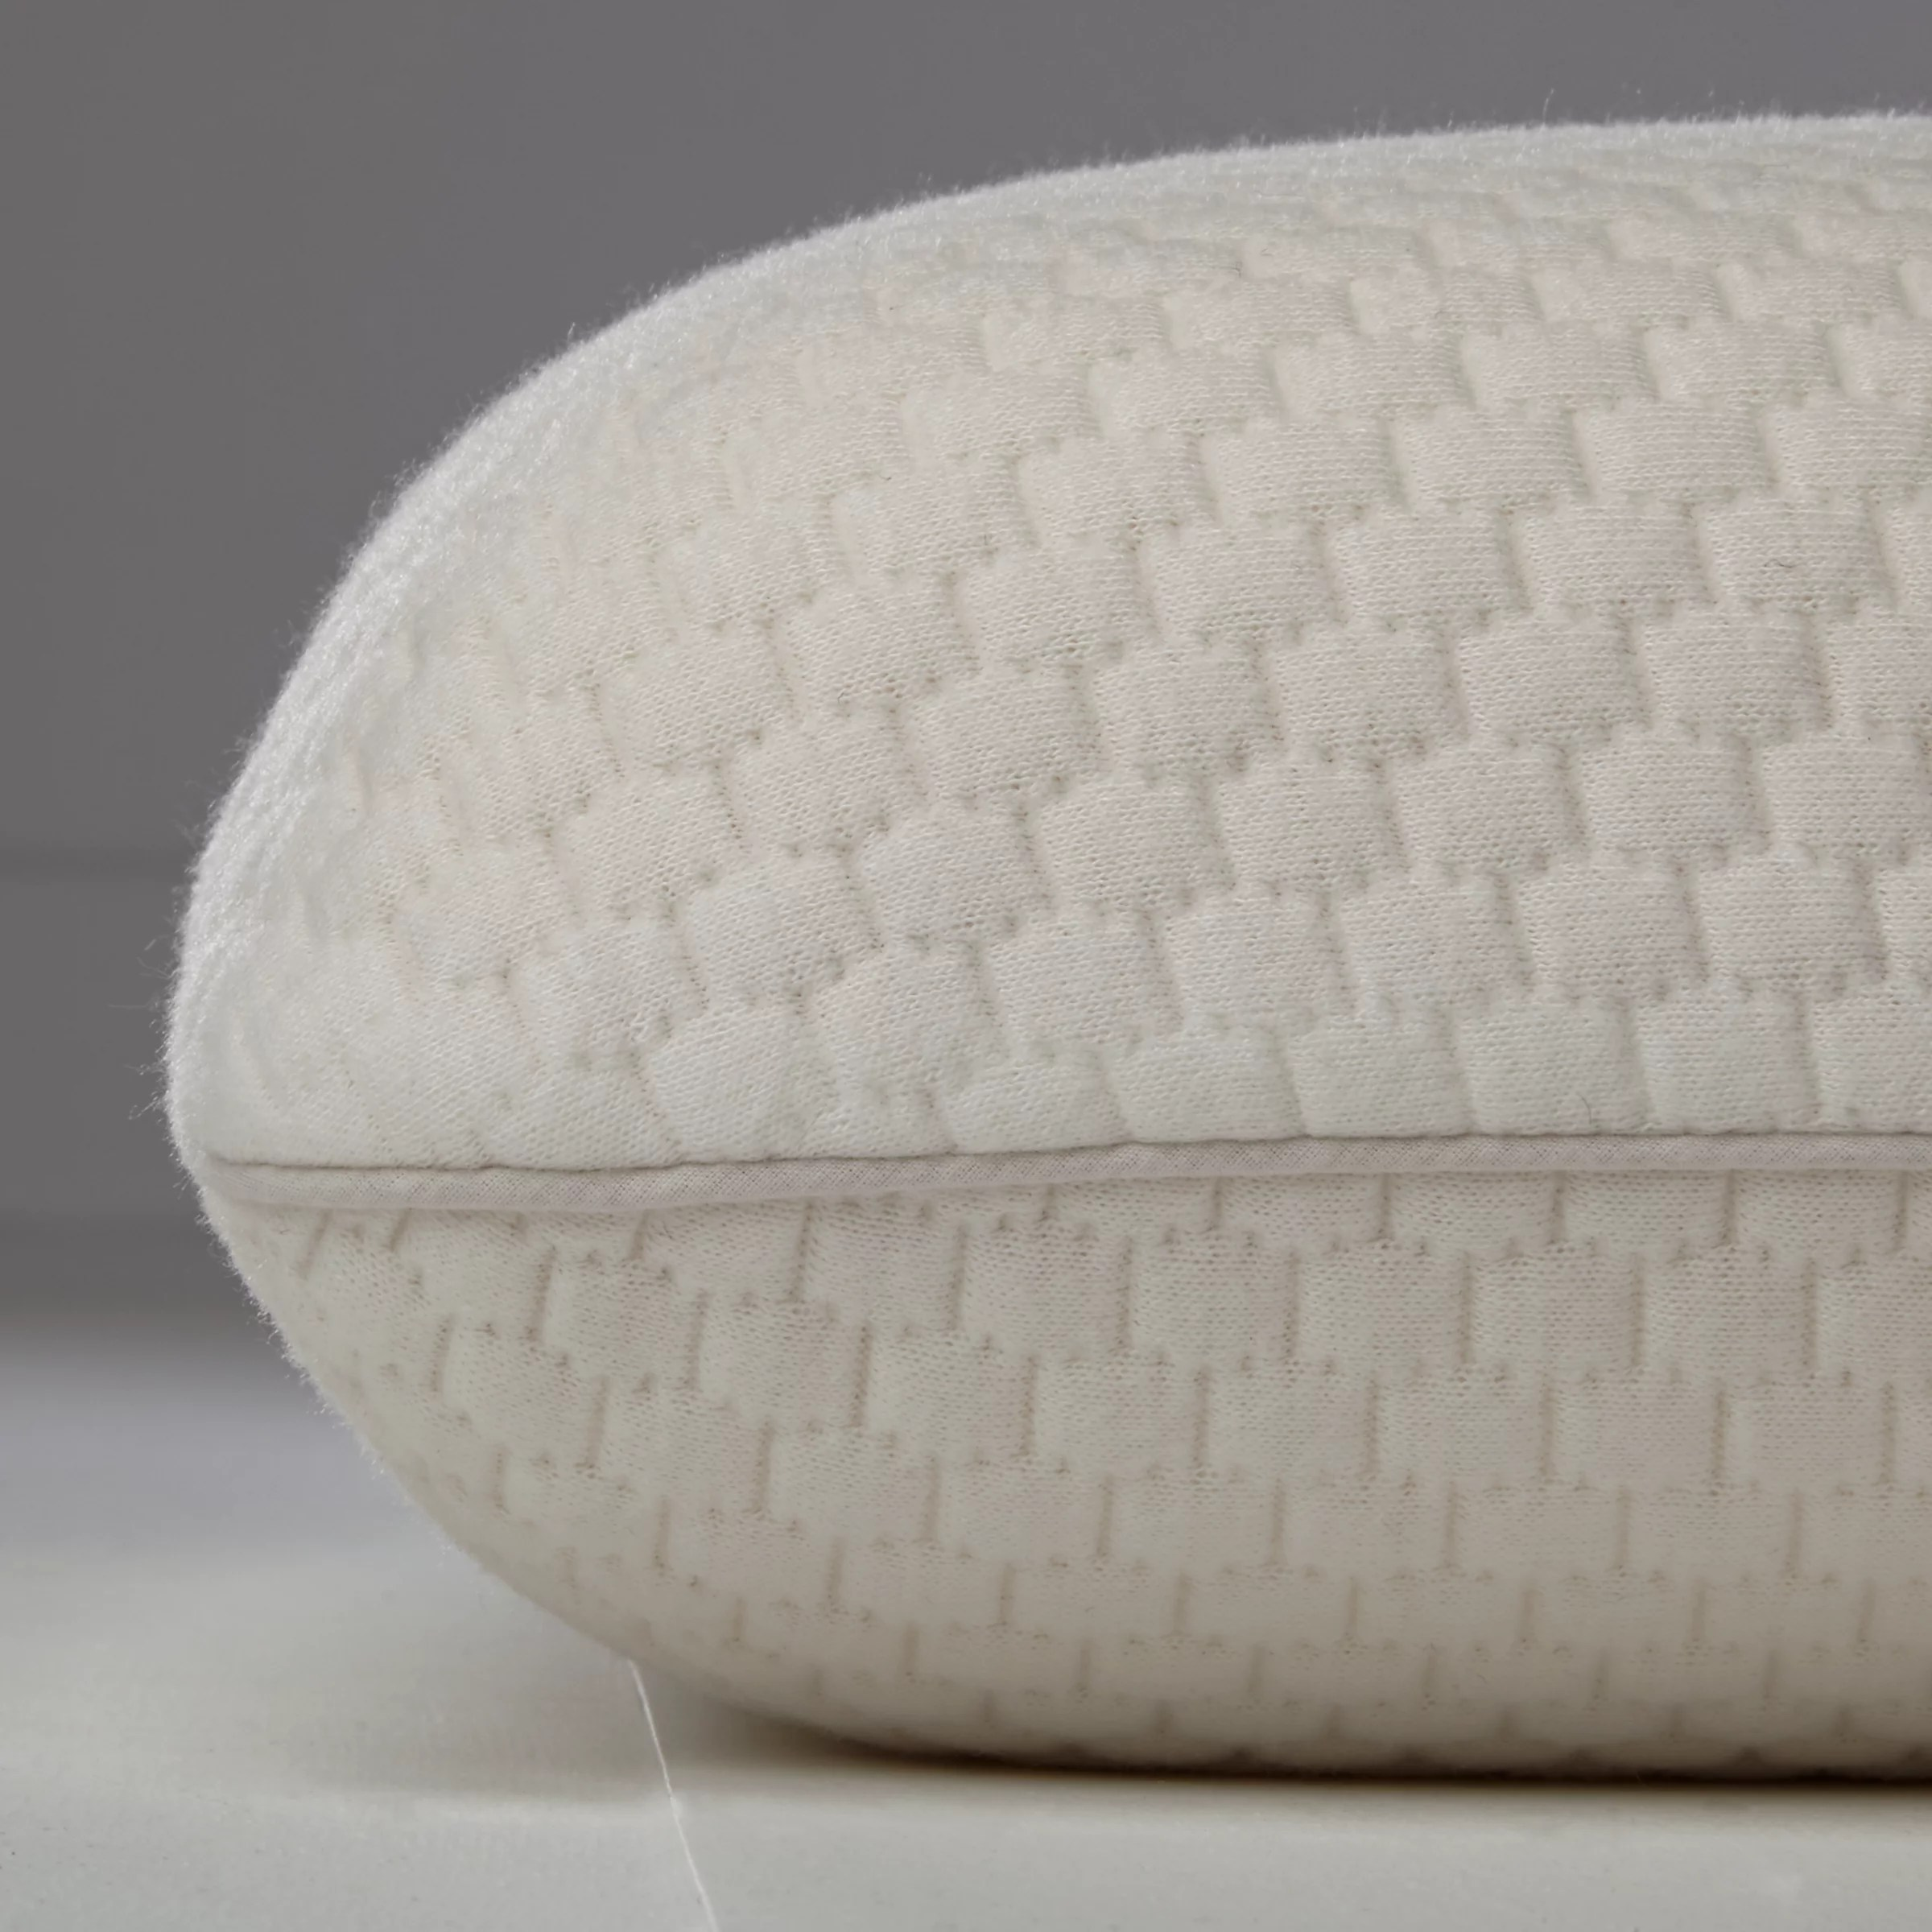 Firm Memory Foam Pillow John Lewis Memory Foam Pillow Medium Firm